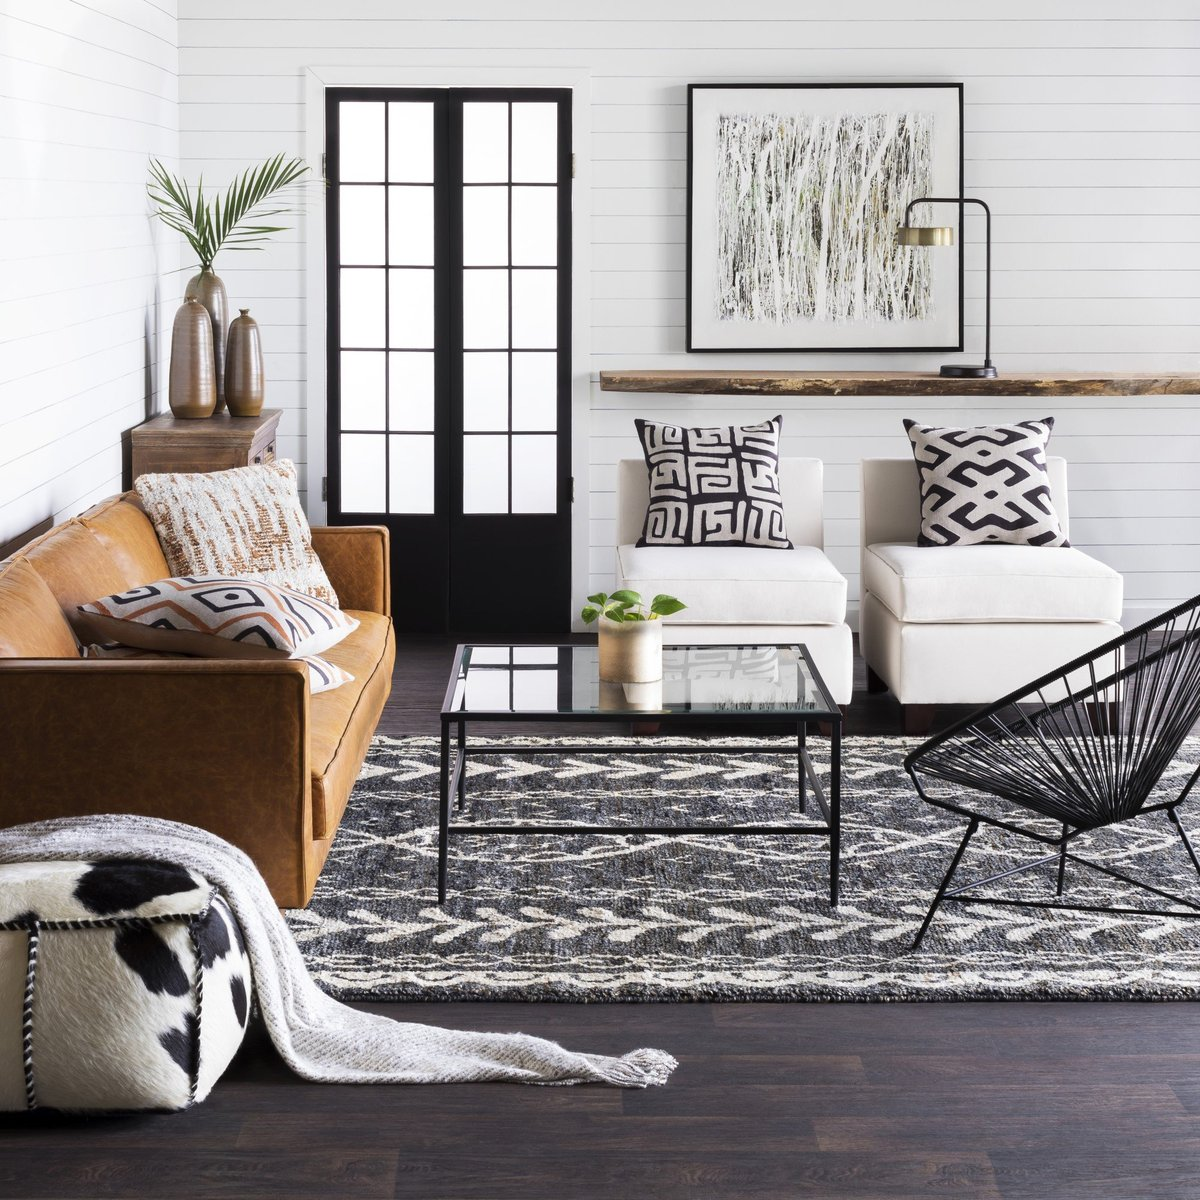 Add some global inspiration to your living room